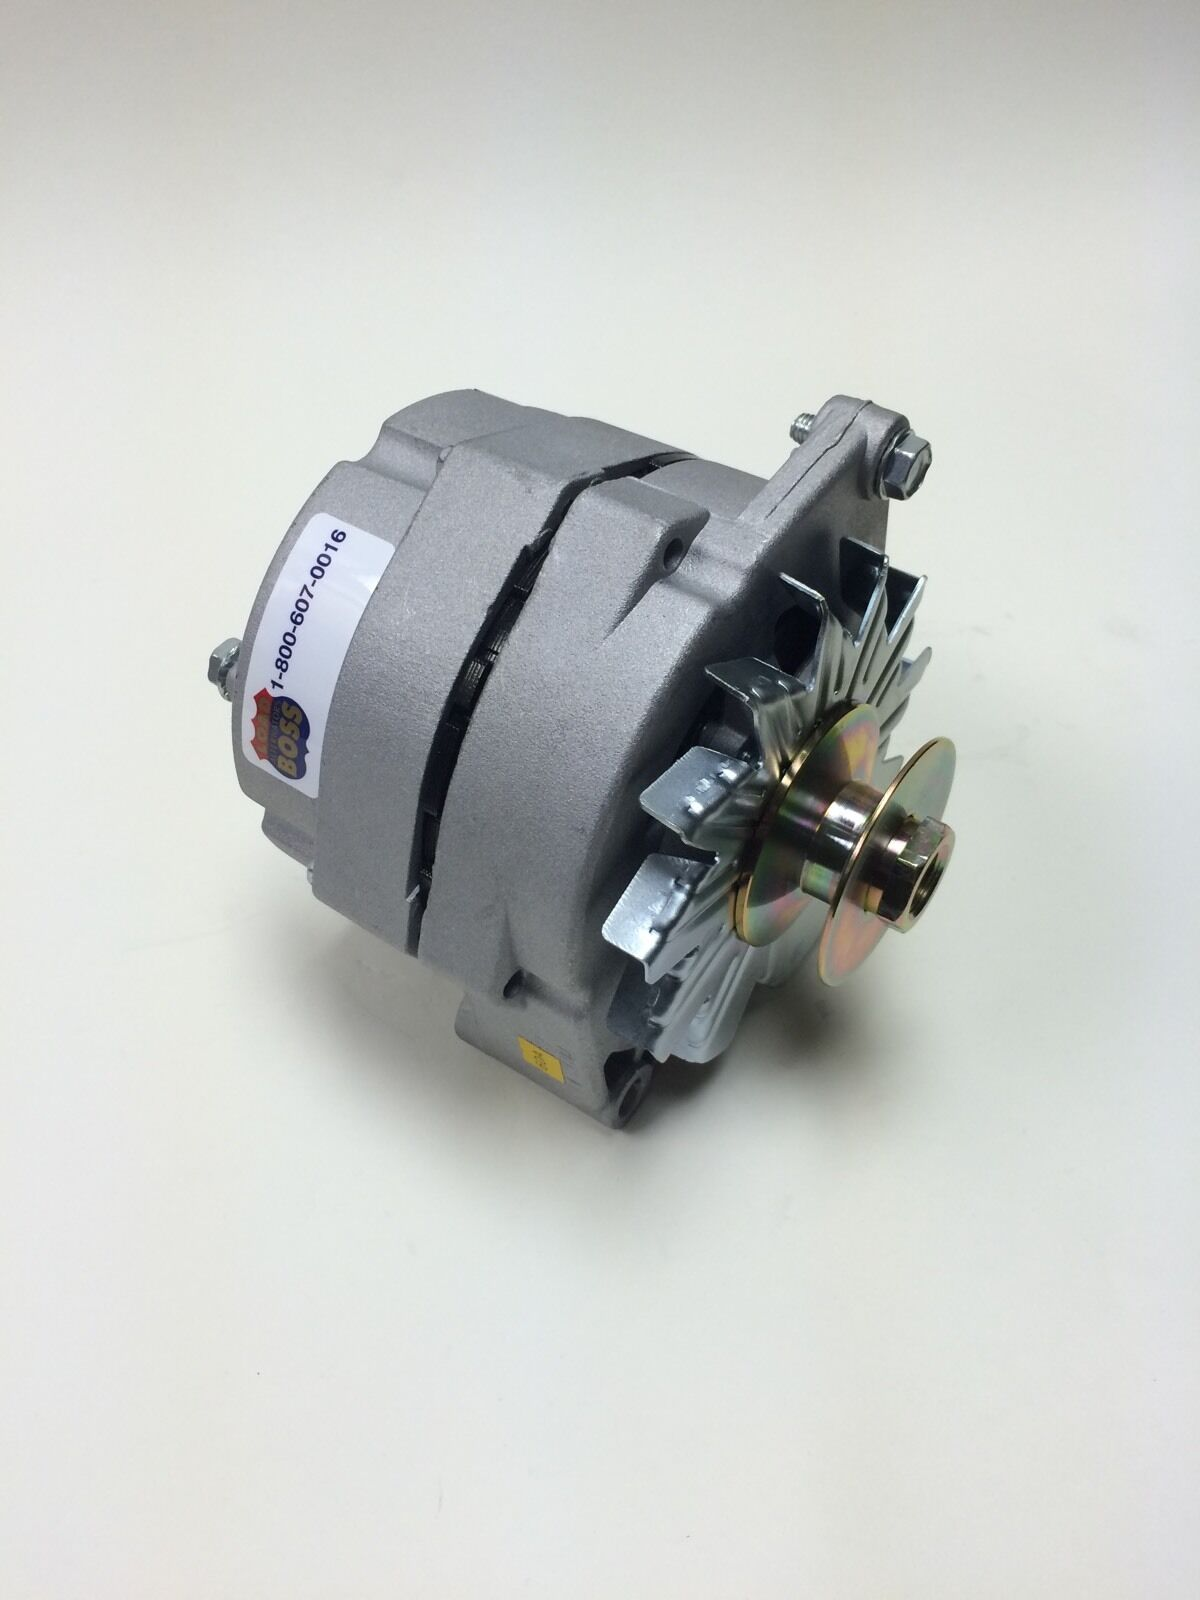 Alternator One Wire 1 6 Volt Positive Ground 60 Amp With 3 4 Single Of 7free Shipping